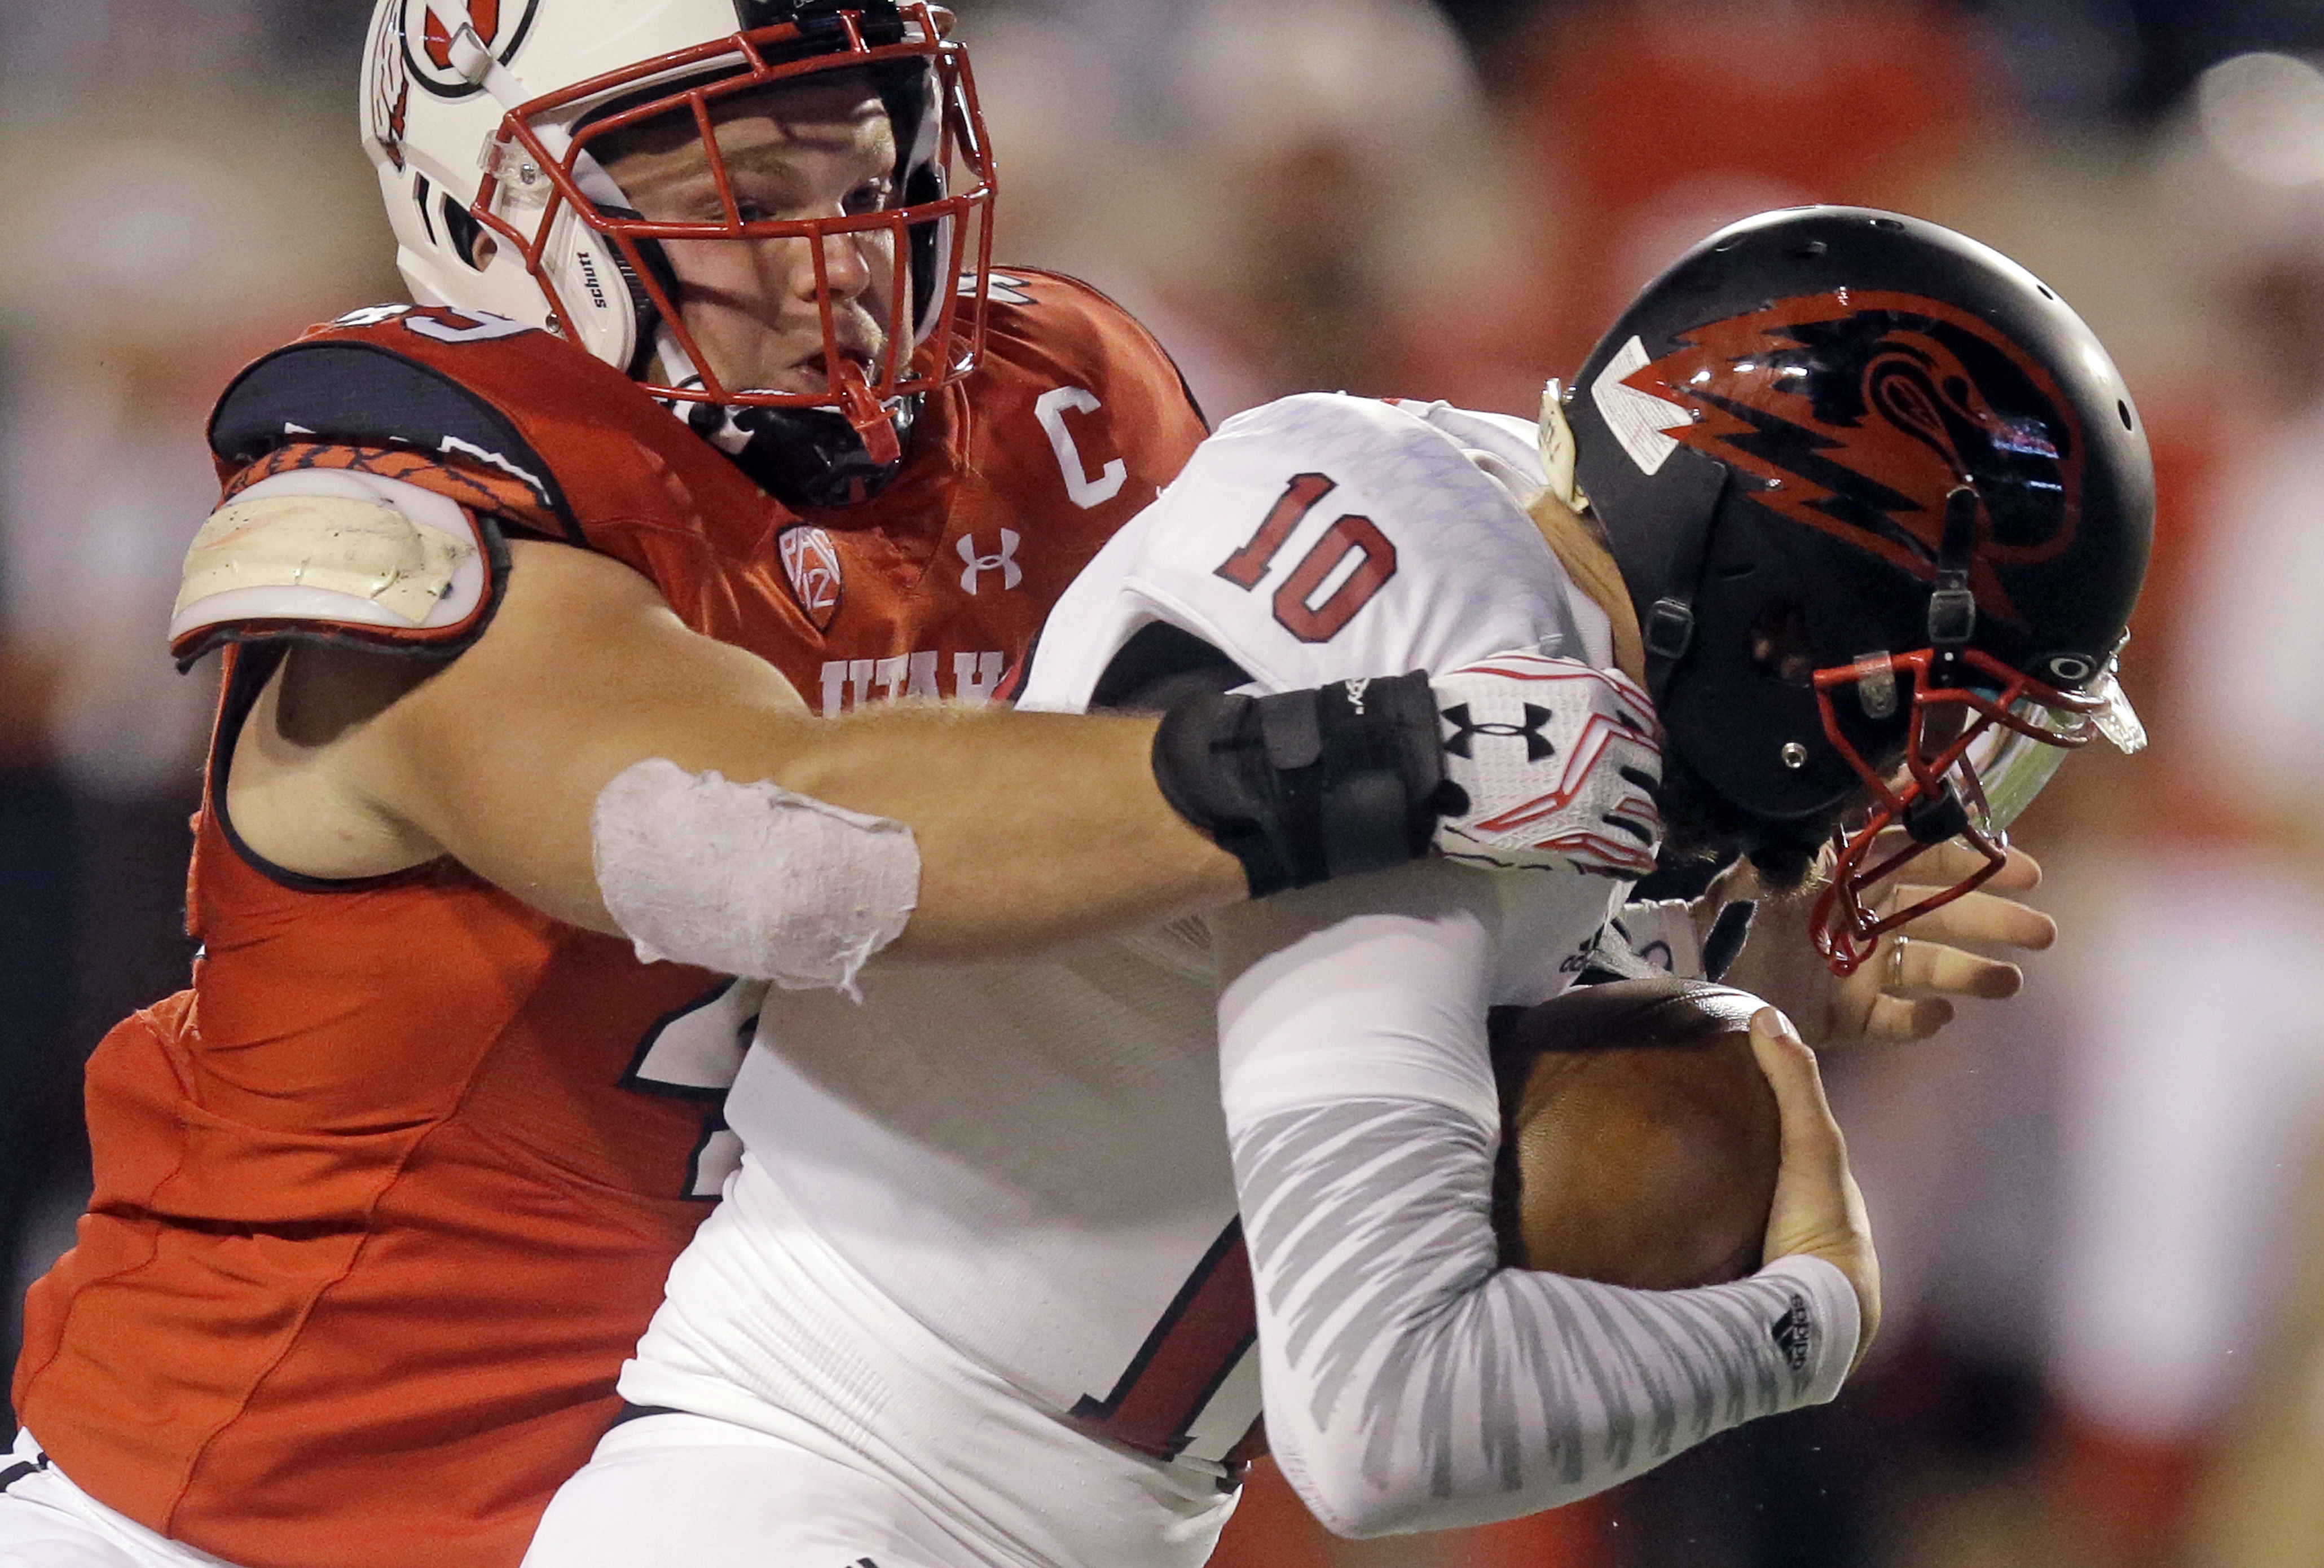 FILE - In this Sept. 1, 2016, file photo, Utah defensive end Hunter Dimick, left, sacks Southern Utah quarterback Tannon Pedersen (10) in the second half during an NCAA college football game in Salt Lake City. Dimick shared defensive player of the year ho